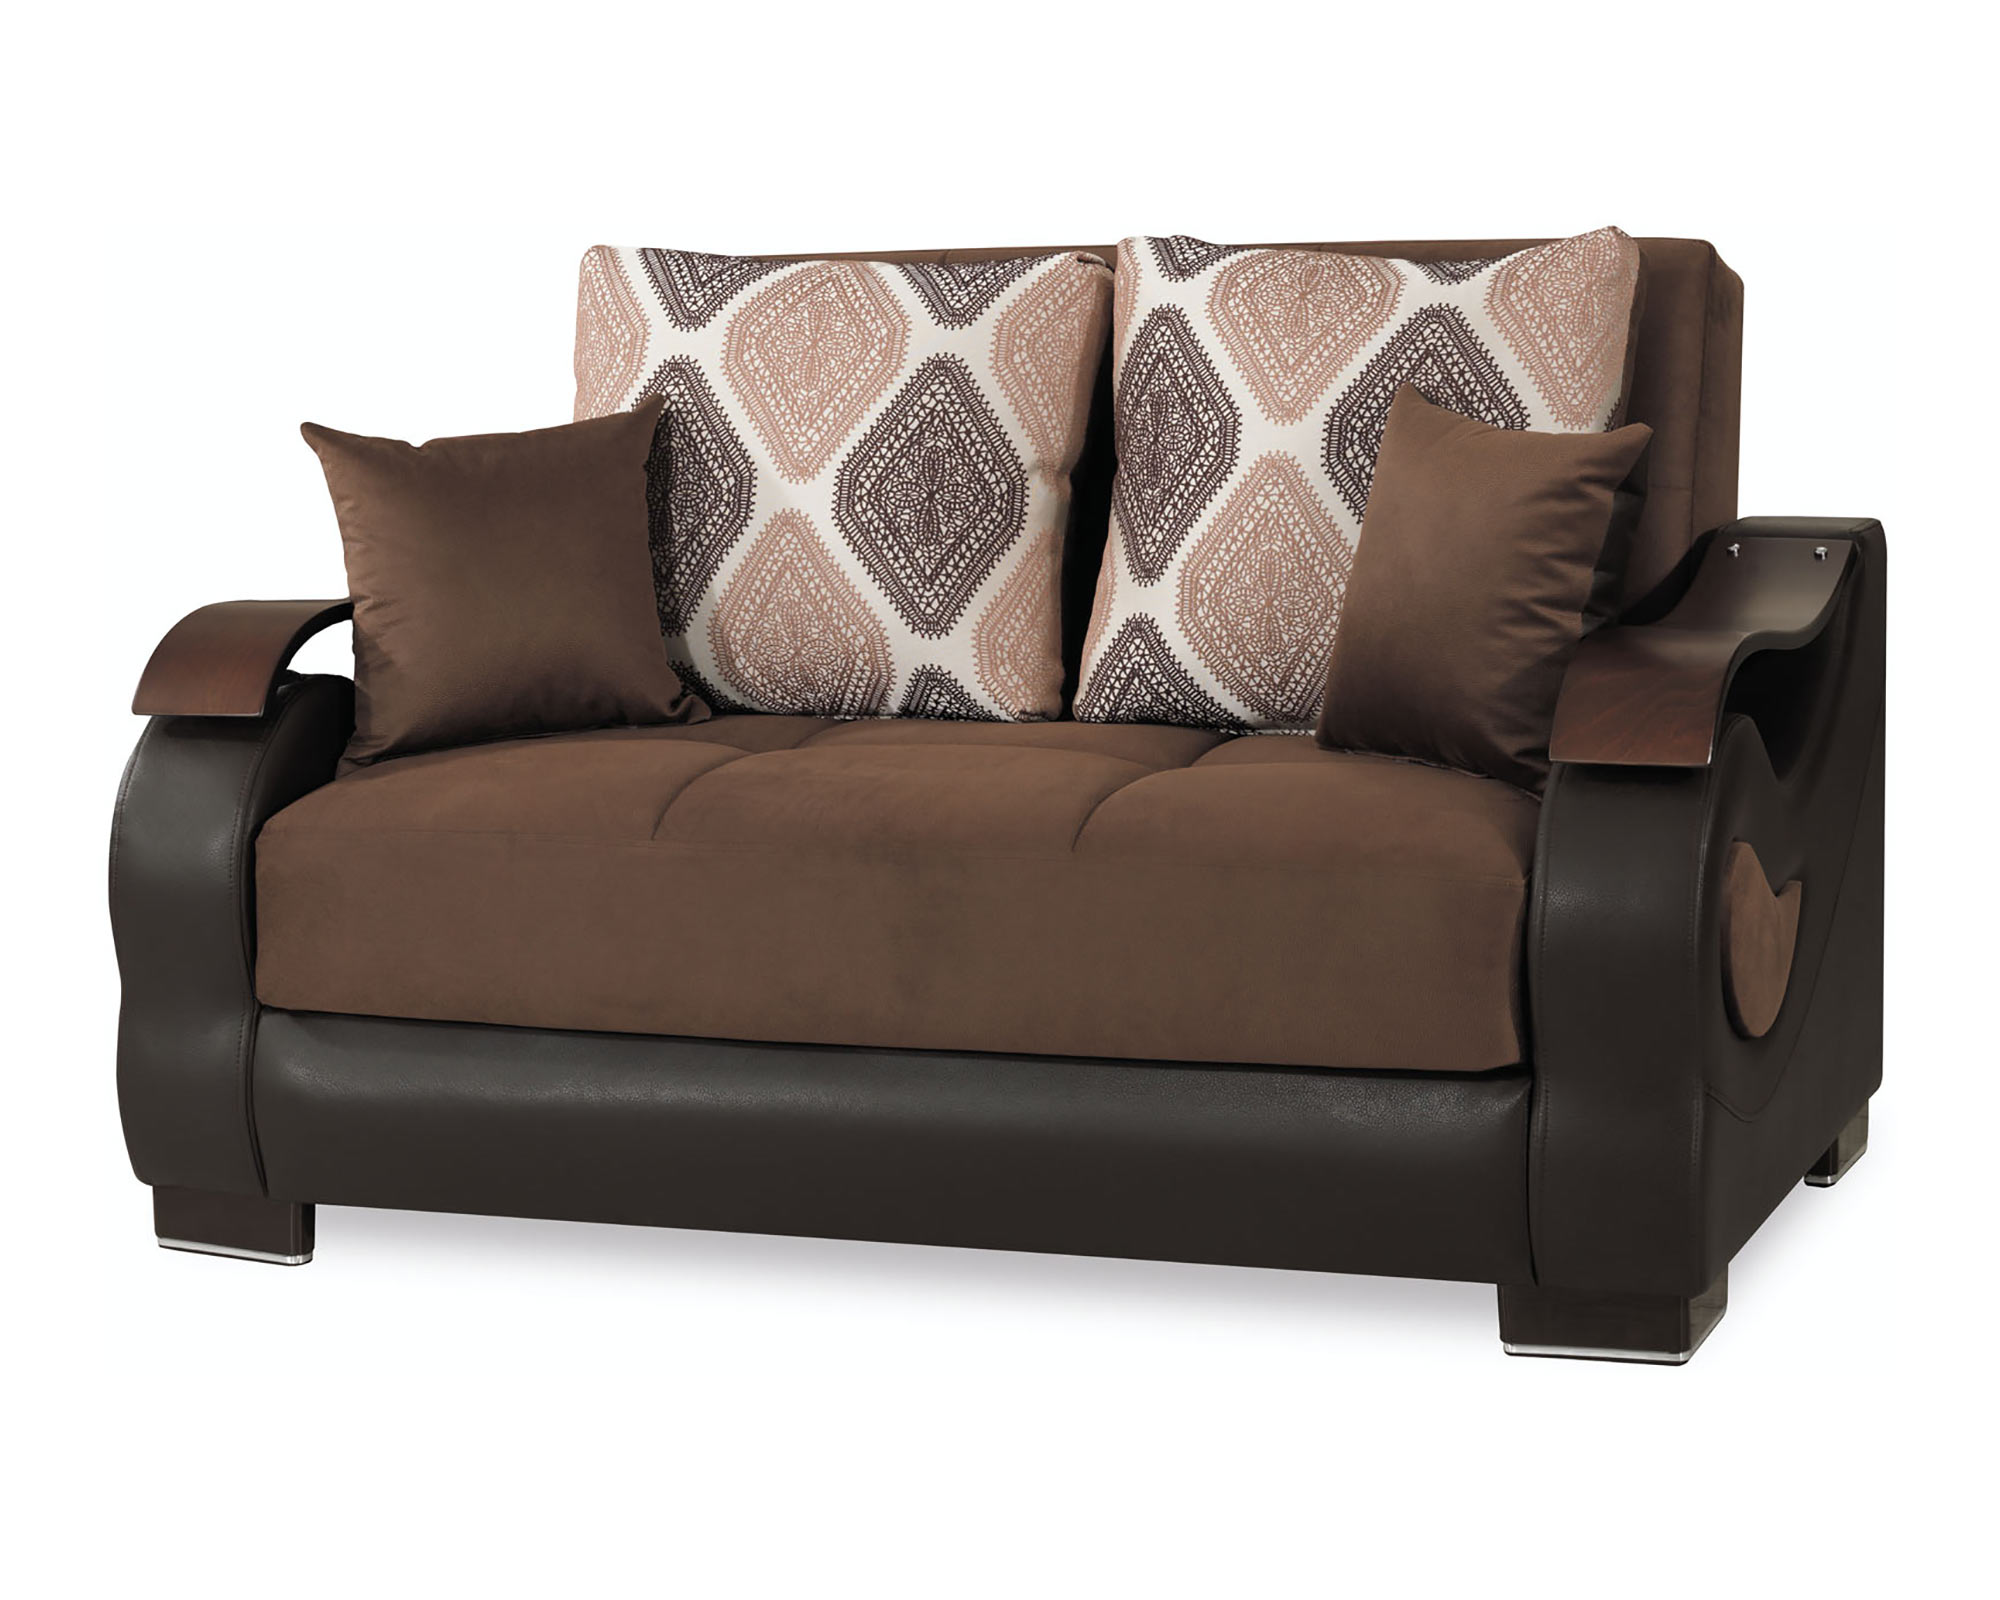 Metroplex Brown Microsuede Convertible Loveseat by Casamode